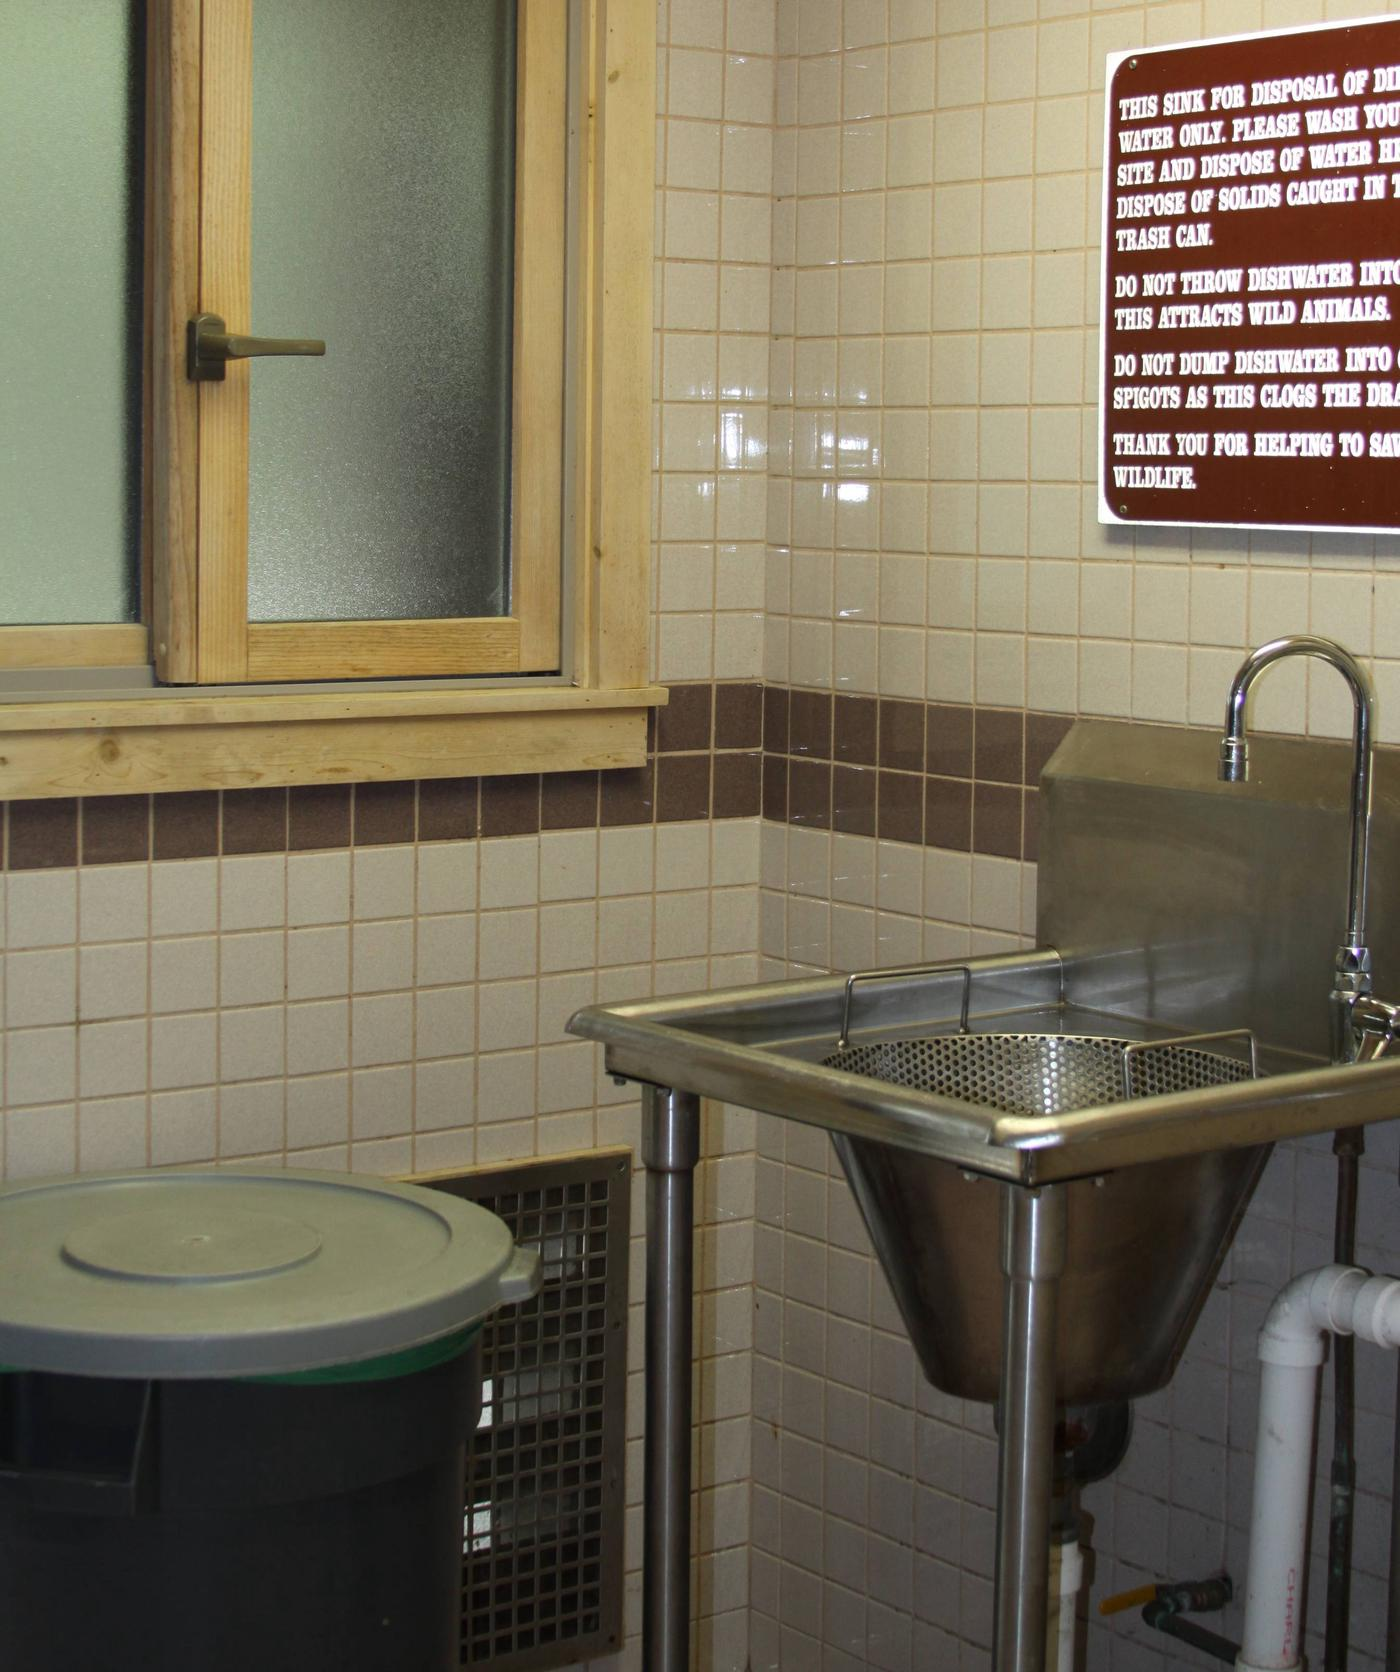 Dirty water disposal sink inside restroom buildingSink where campers pour dirty water from a container after washing dishes at campsite. (This is NOT a dishwashing station).